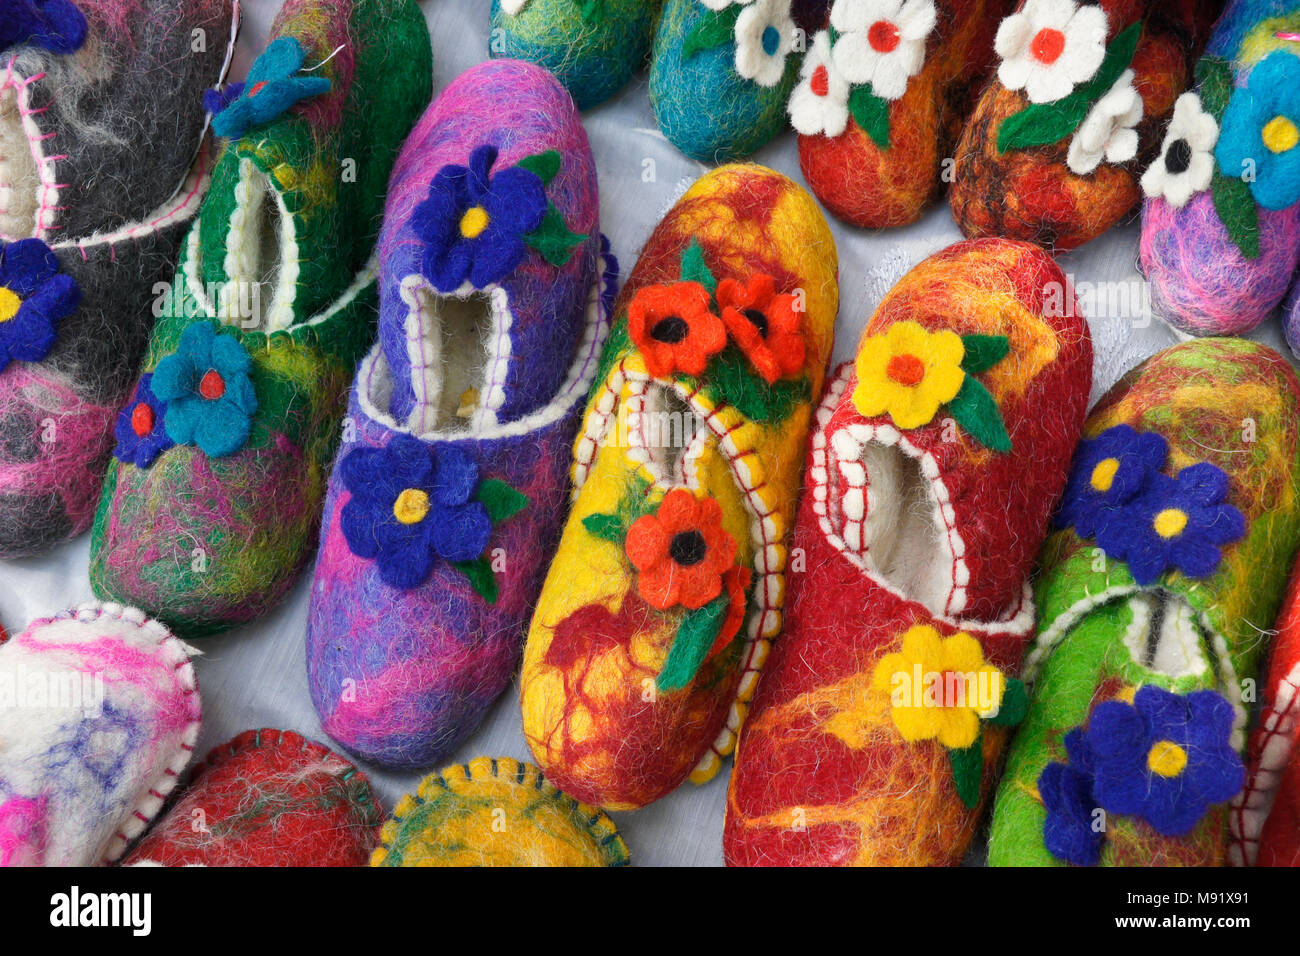 Colorful floral-design wool slippers for sale by a street vendor in Old Town, Tbilisi, Georgia - Stock Image